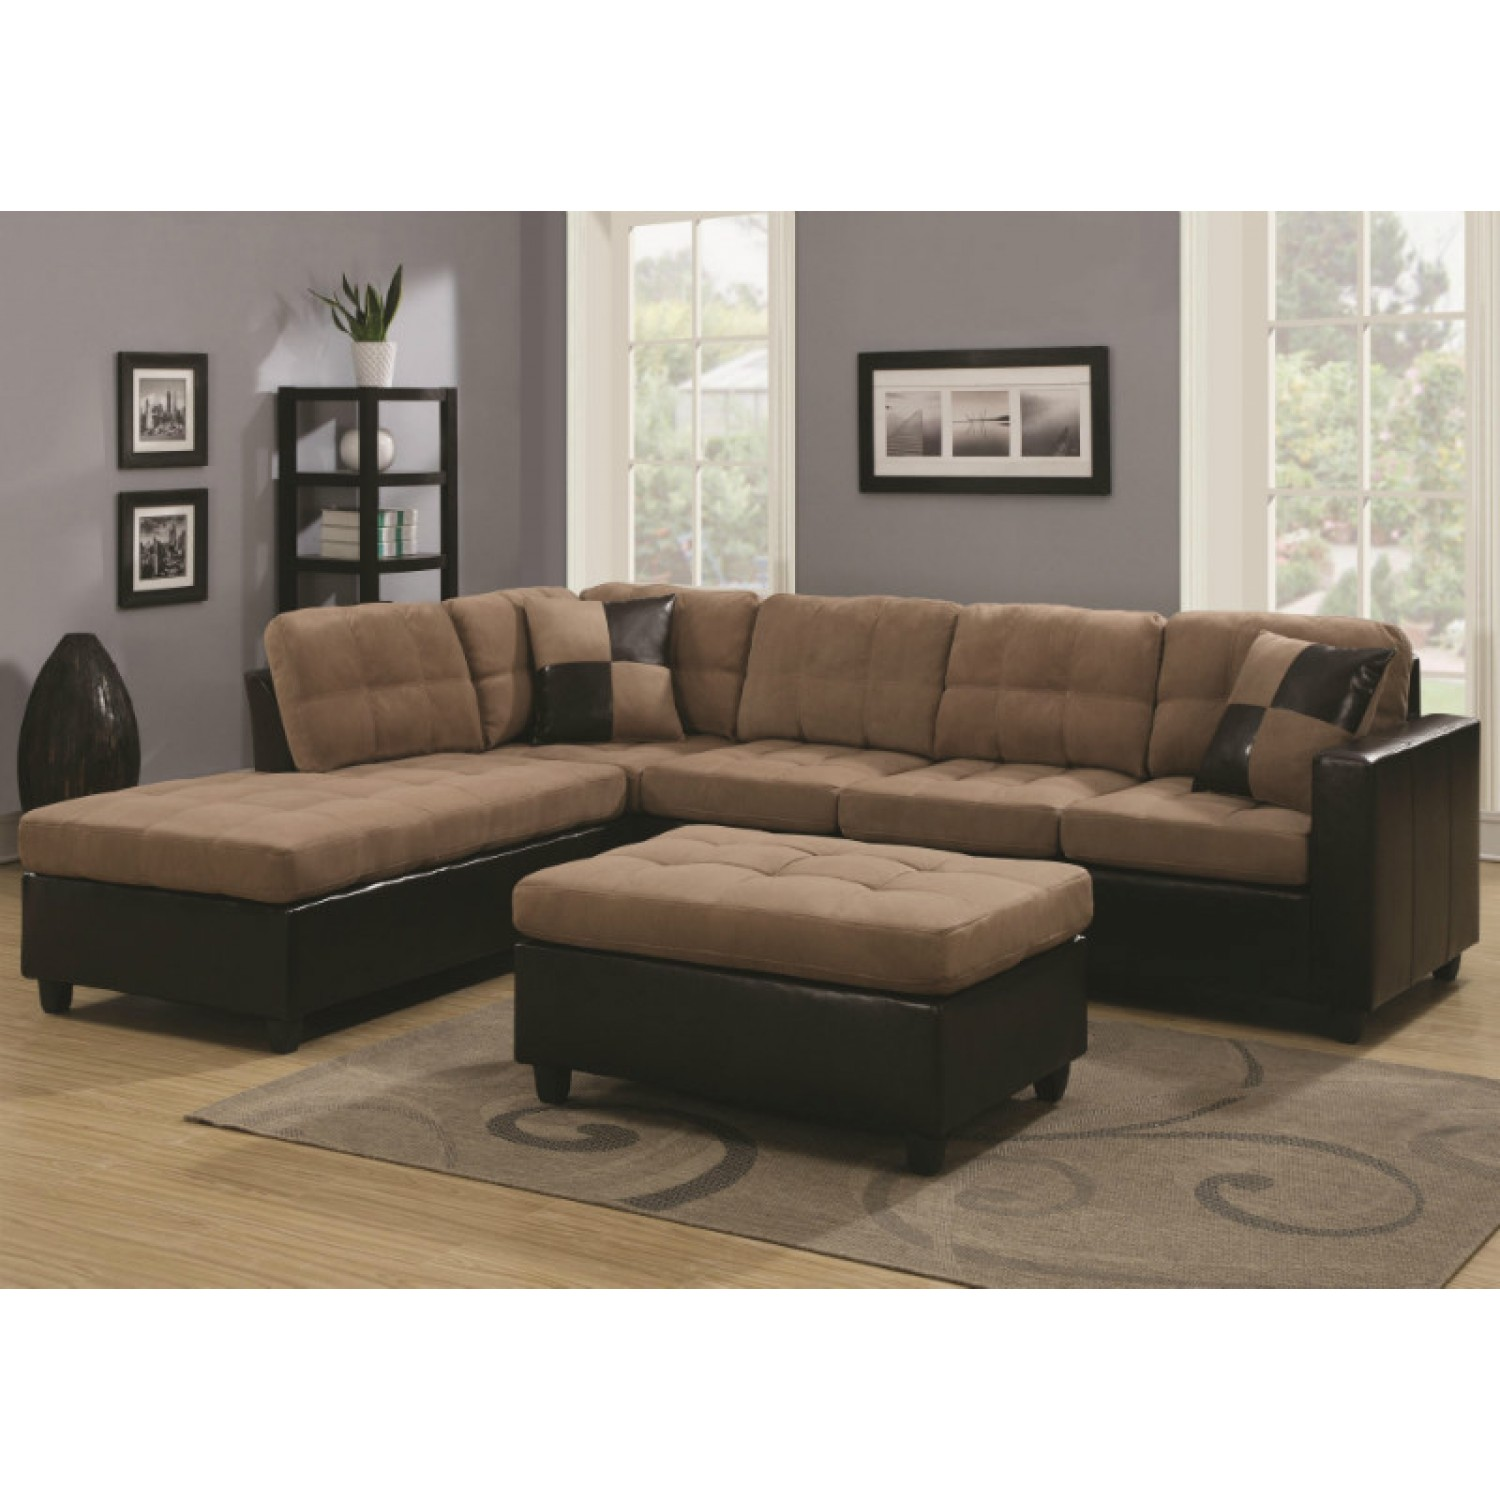 Amazing sectional couches for sale with cushions and wooden legs for home furniture ideas with cheap sectional couches for sale